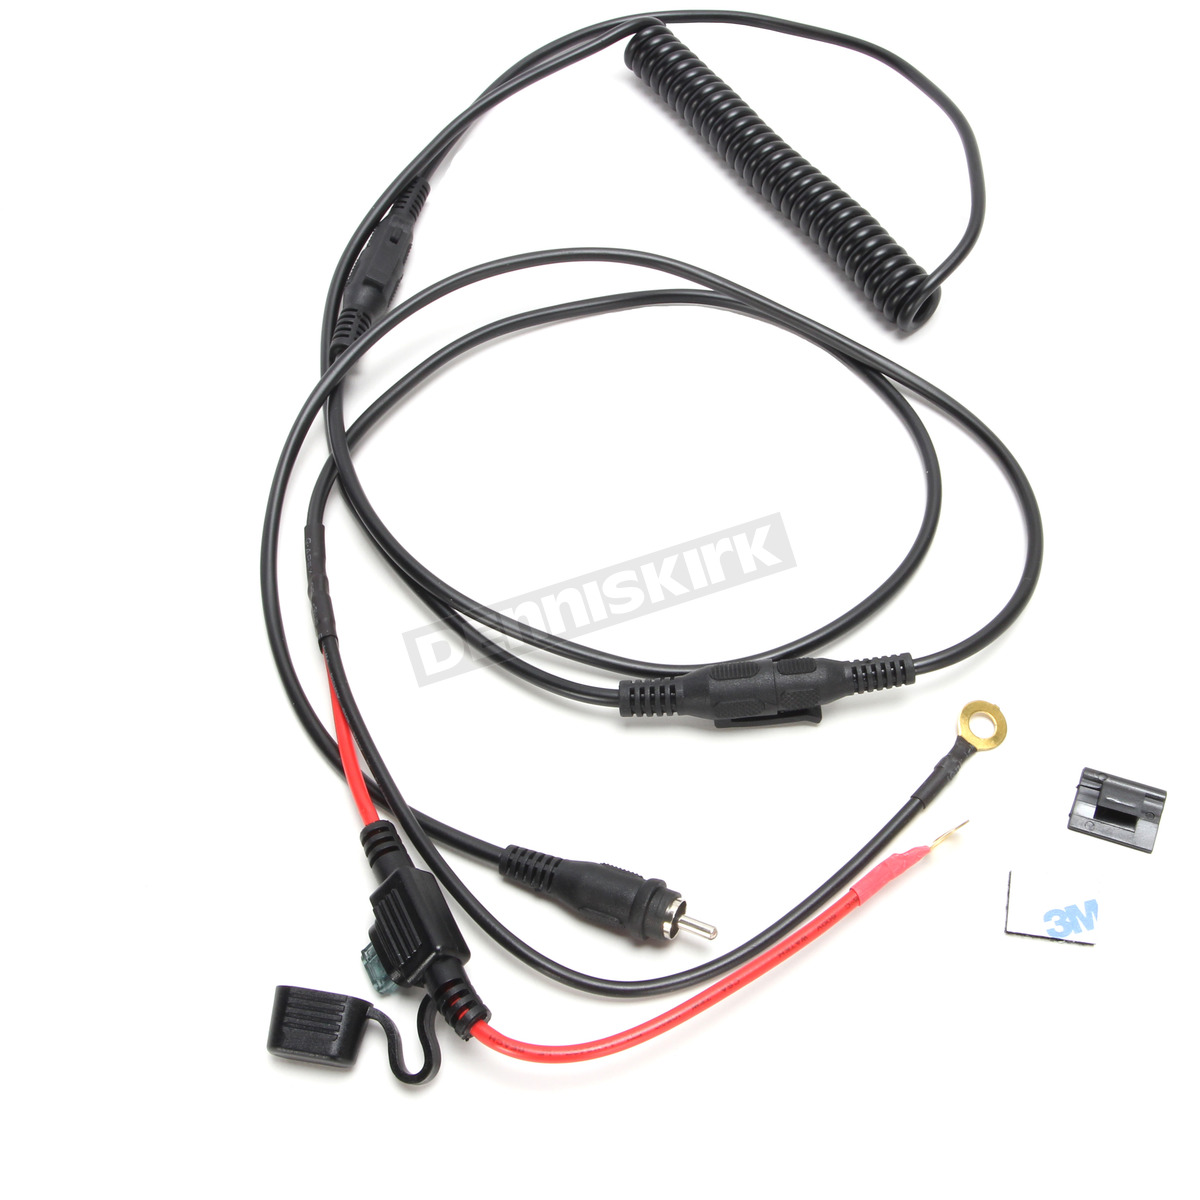 Fxr Racing Replacement Powercord For Torque X Electric